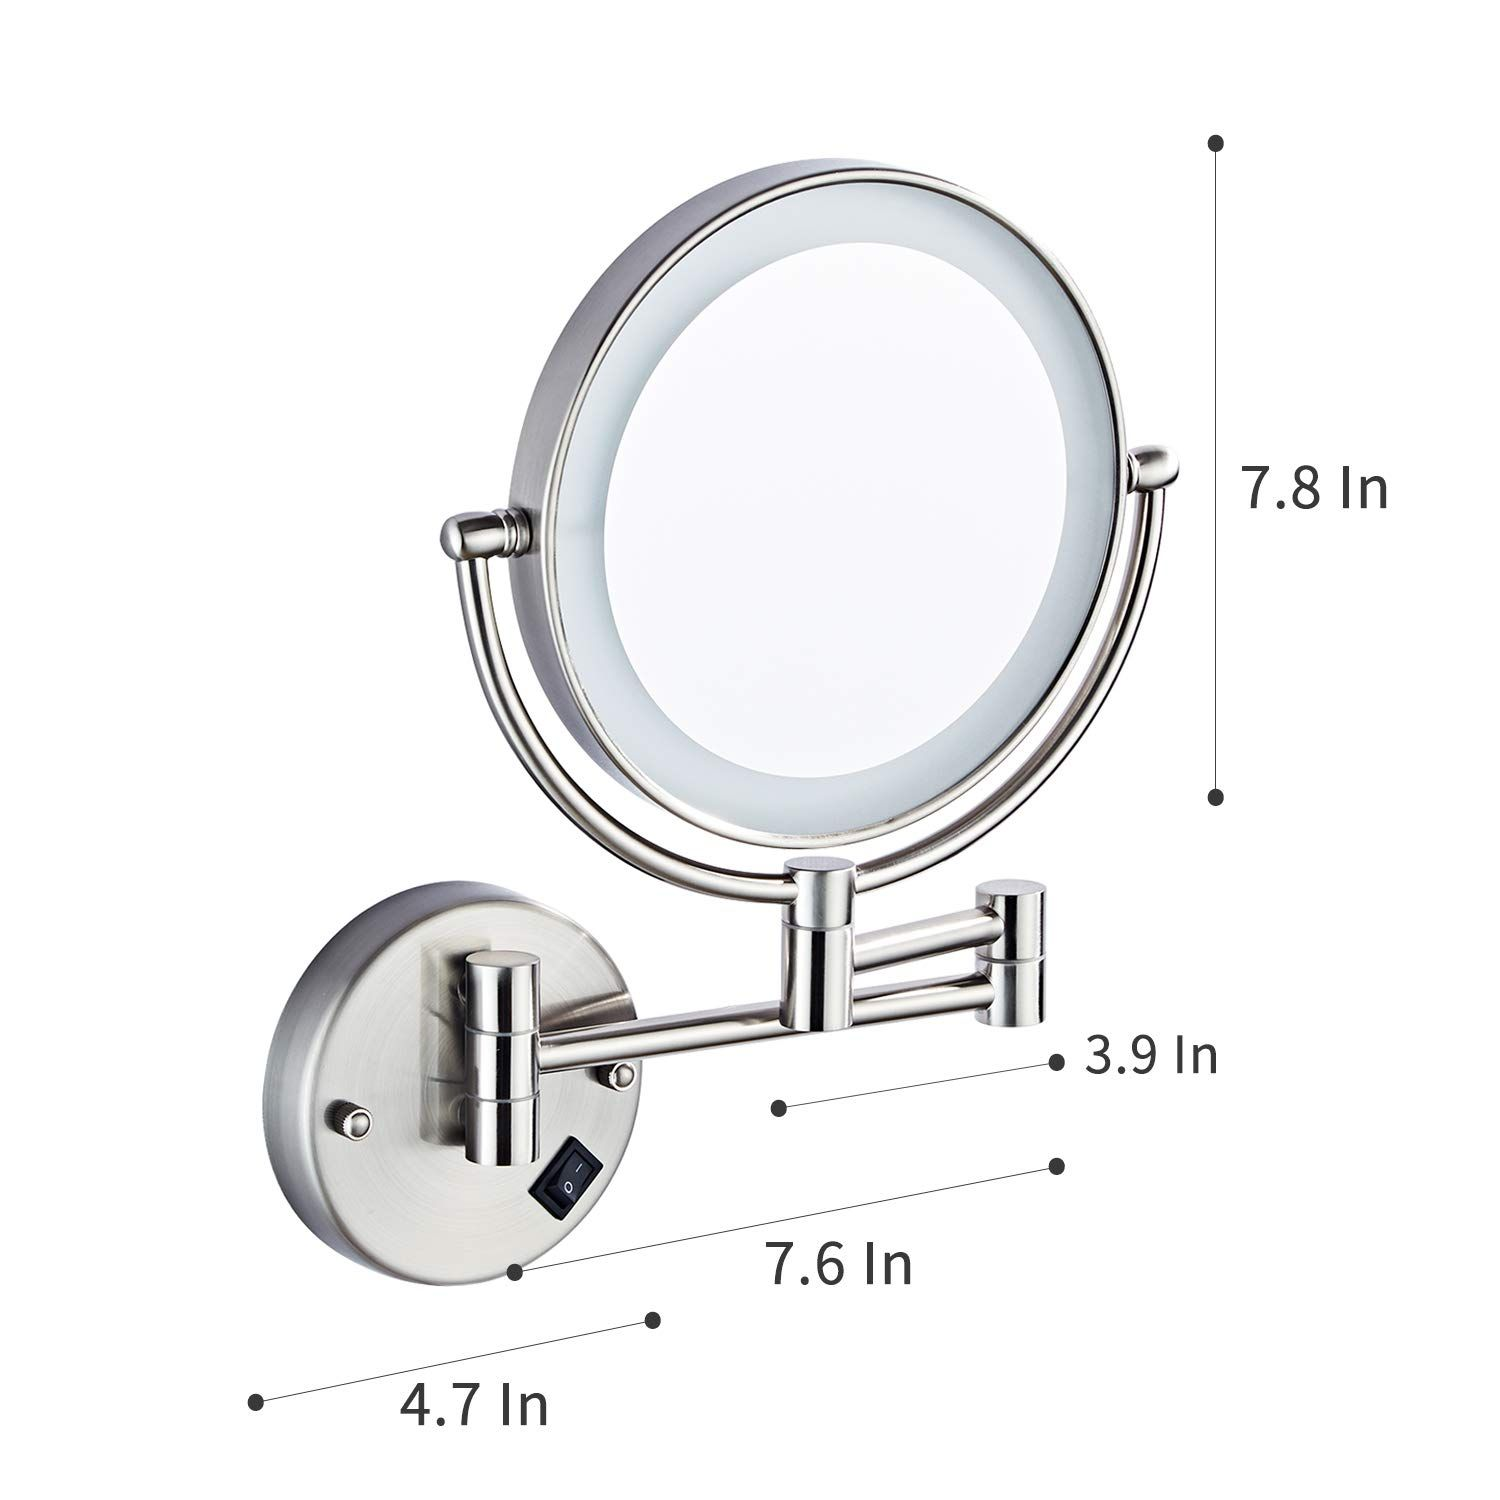 Halo Sanitary Magnification Extension Adjustable In 2020 Led Mirror Adjustable Lighting Round Mirror Bathroom